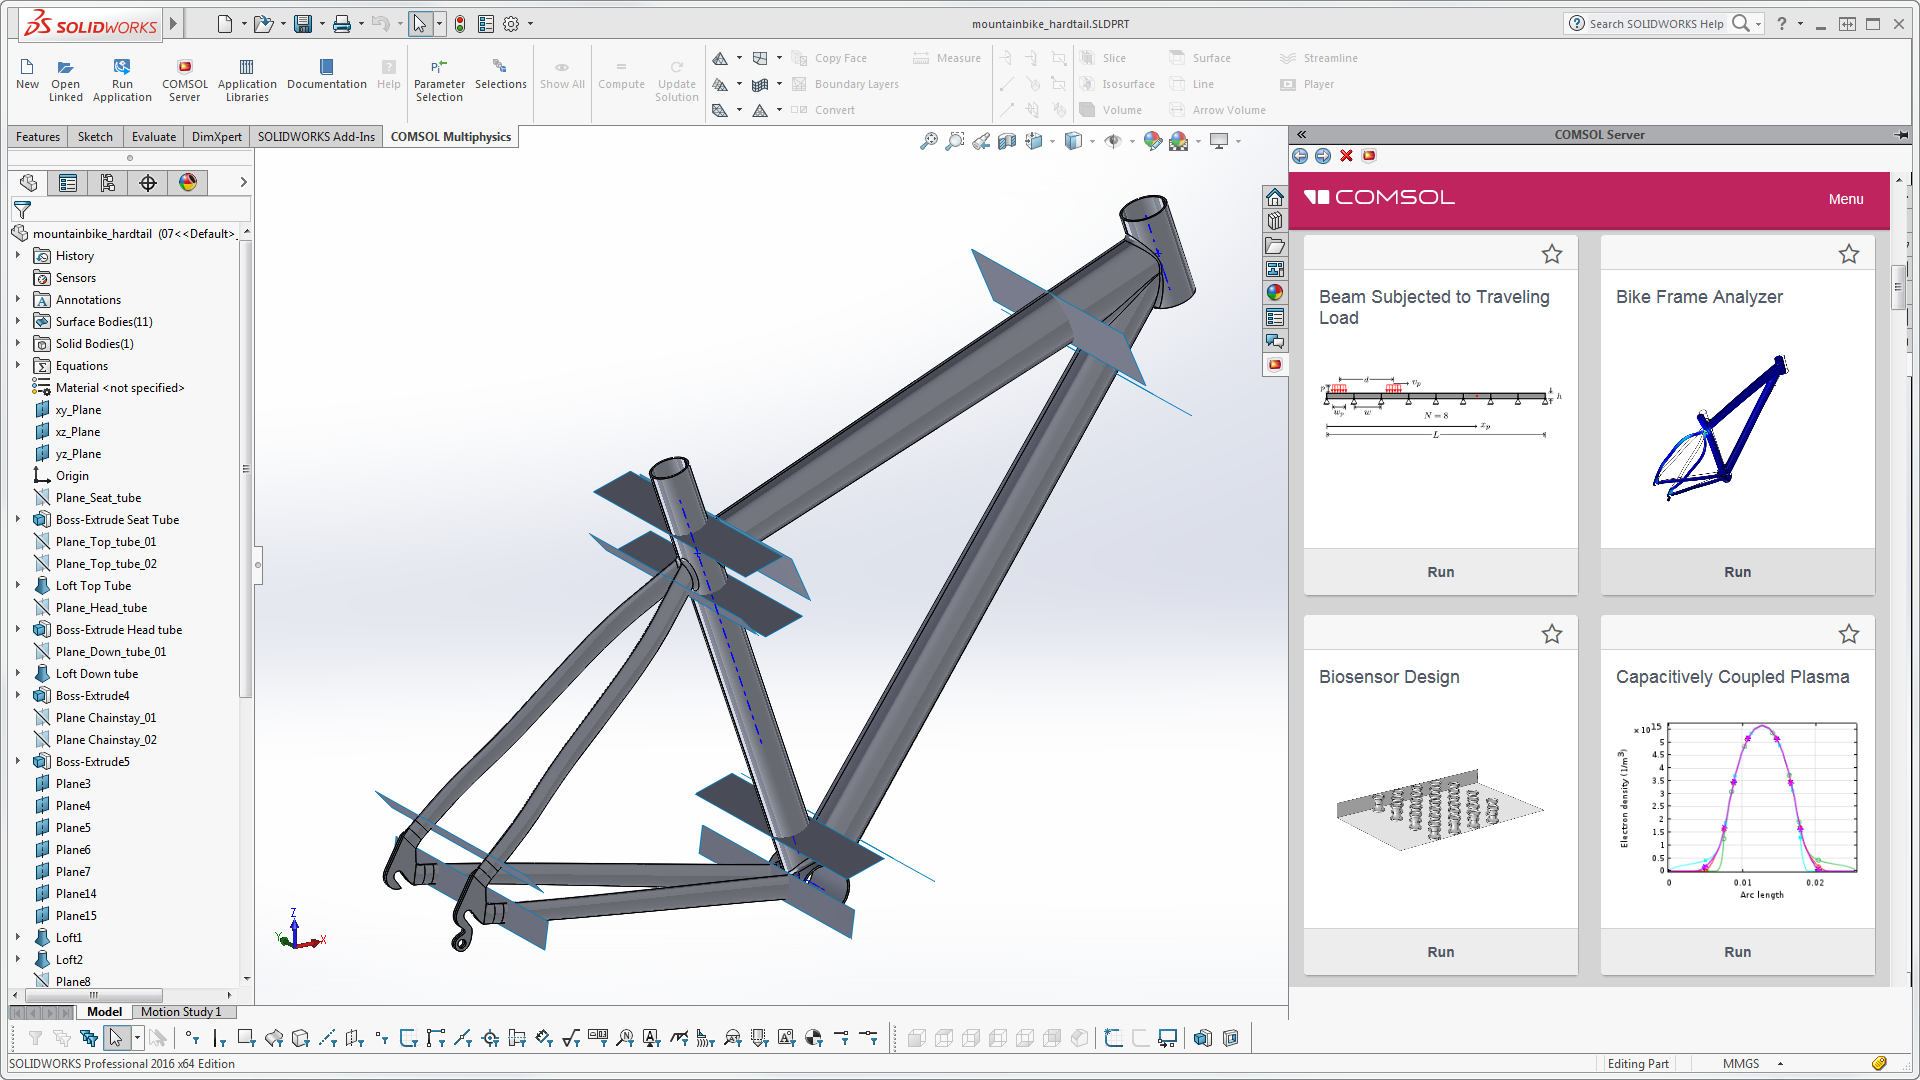 The COMSOL Multiphysics® ribbon tab and embedded COMSOL Server™ interface in the SOLIDWORKS® user interface.